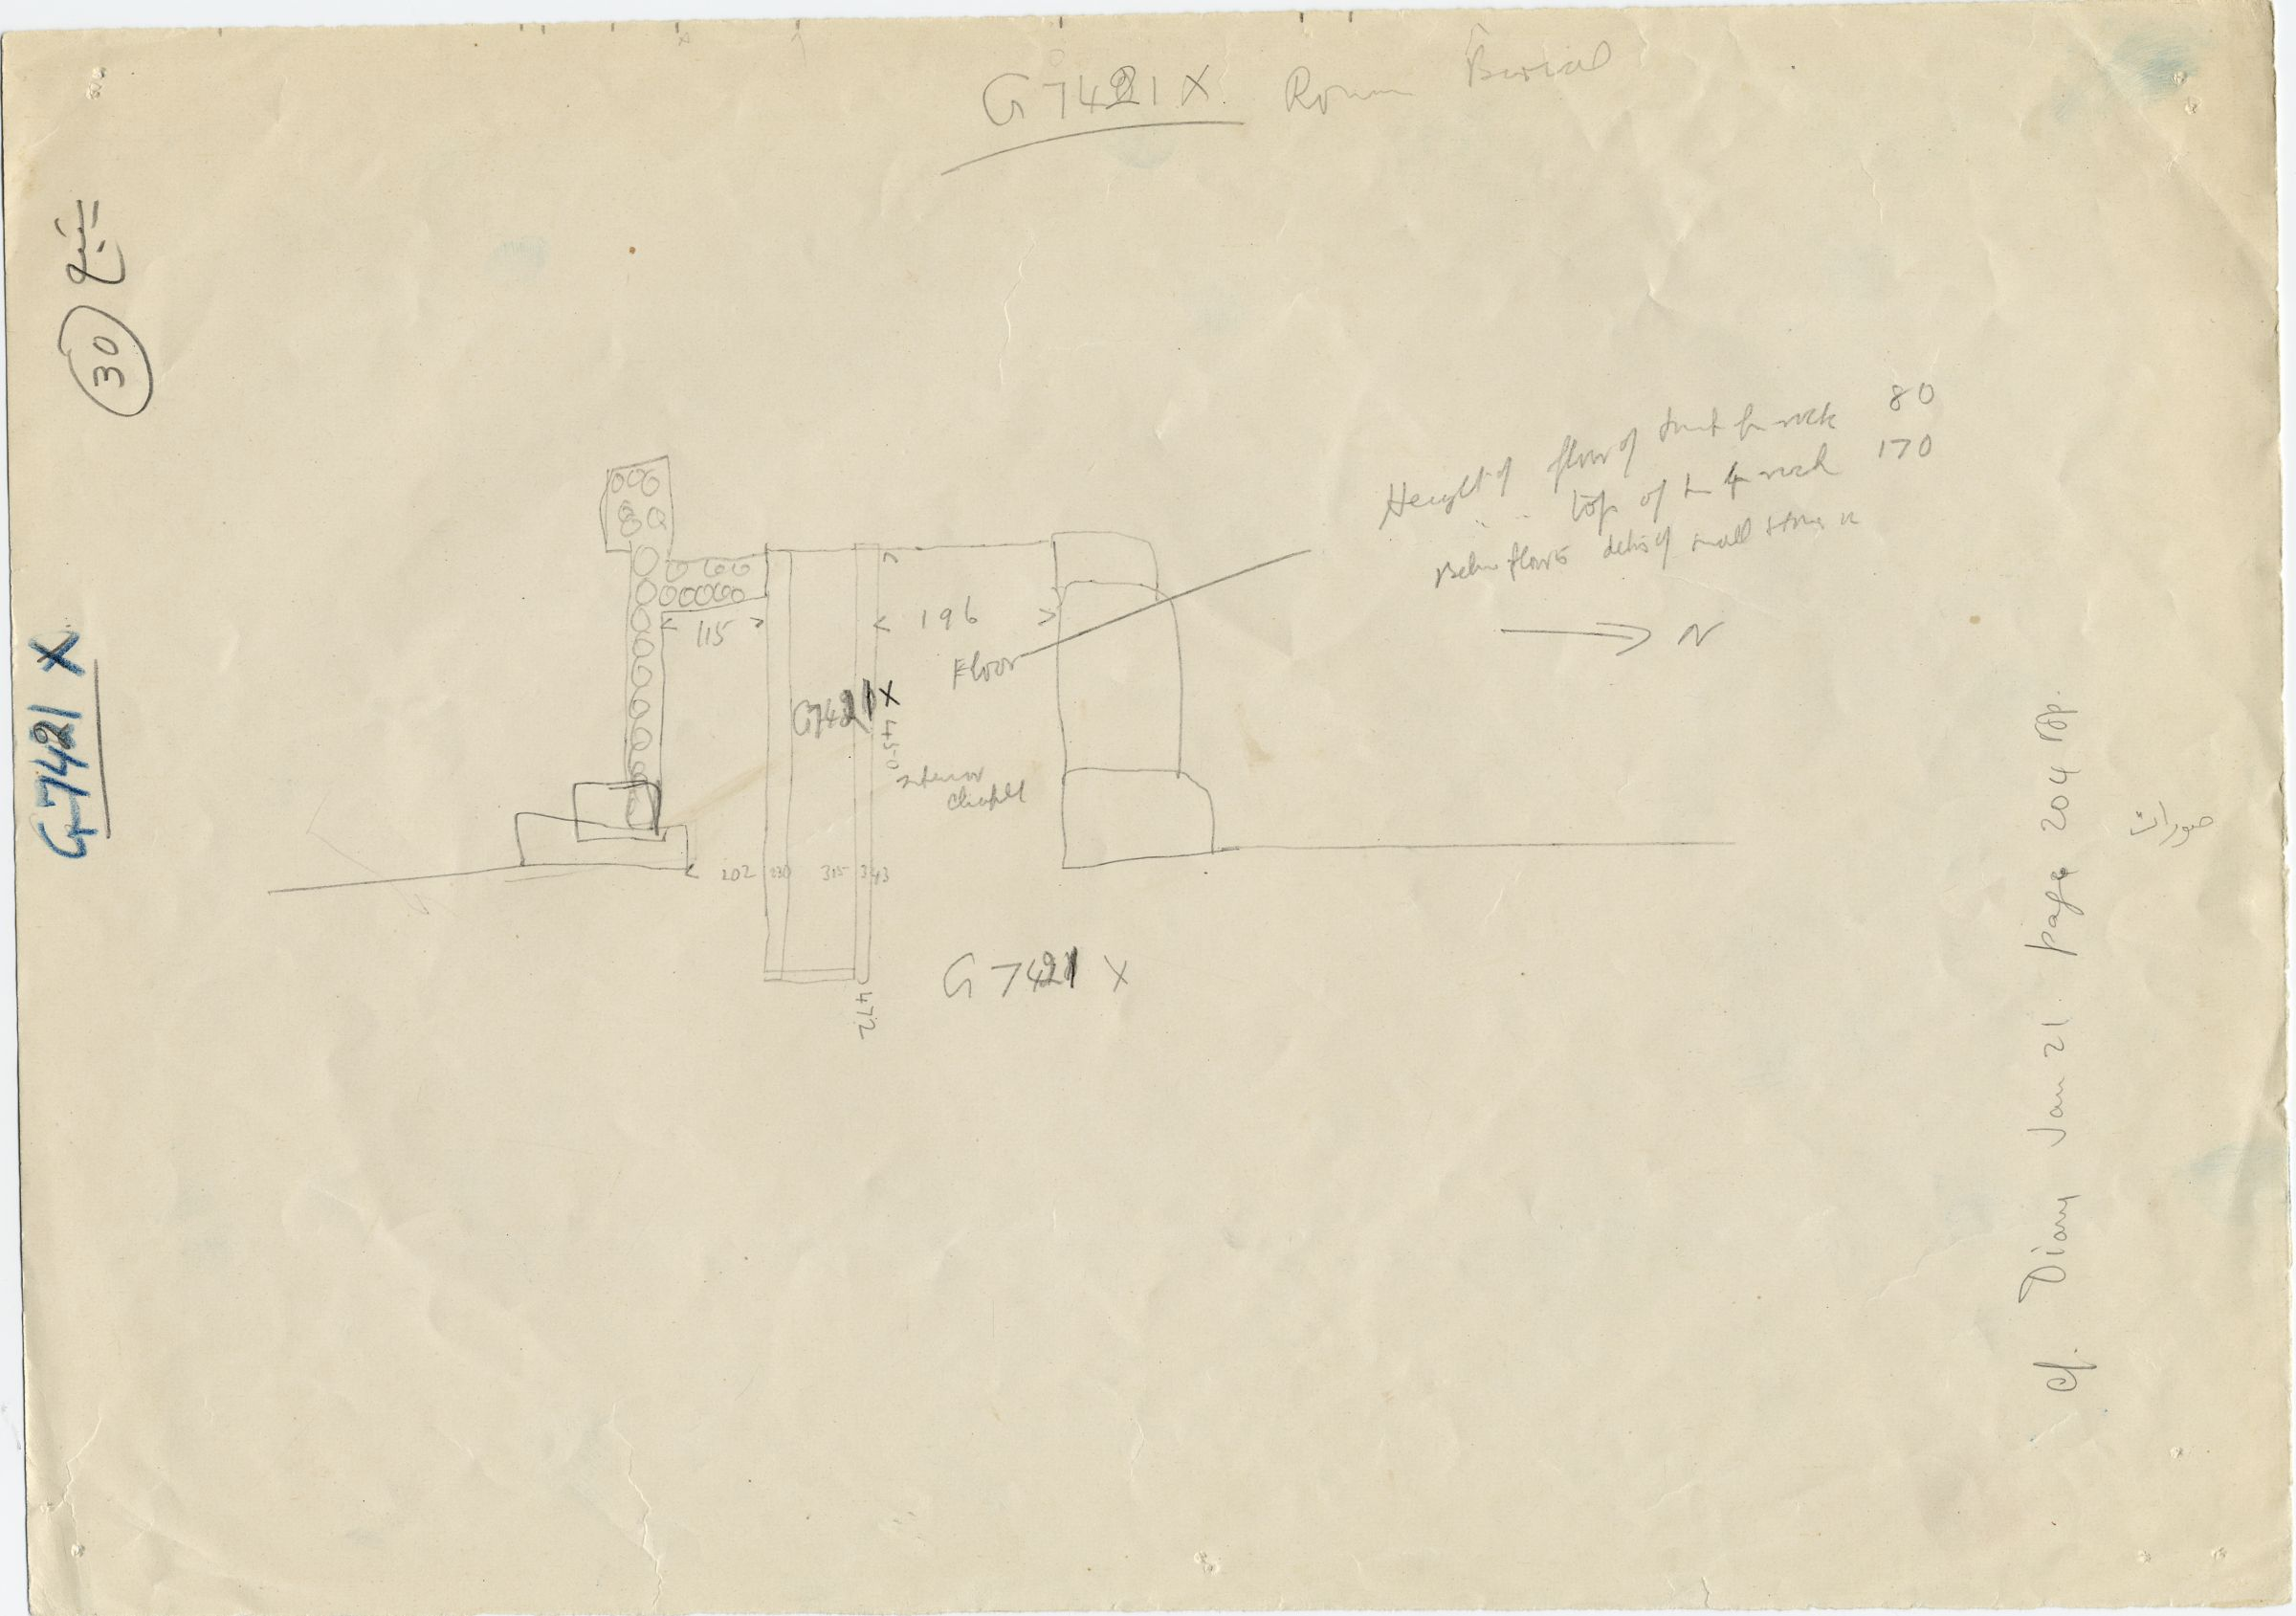 Maps and plans: G 7421, Shaft X